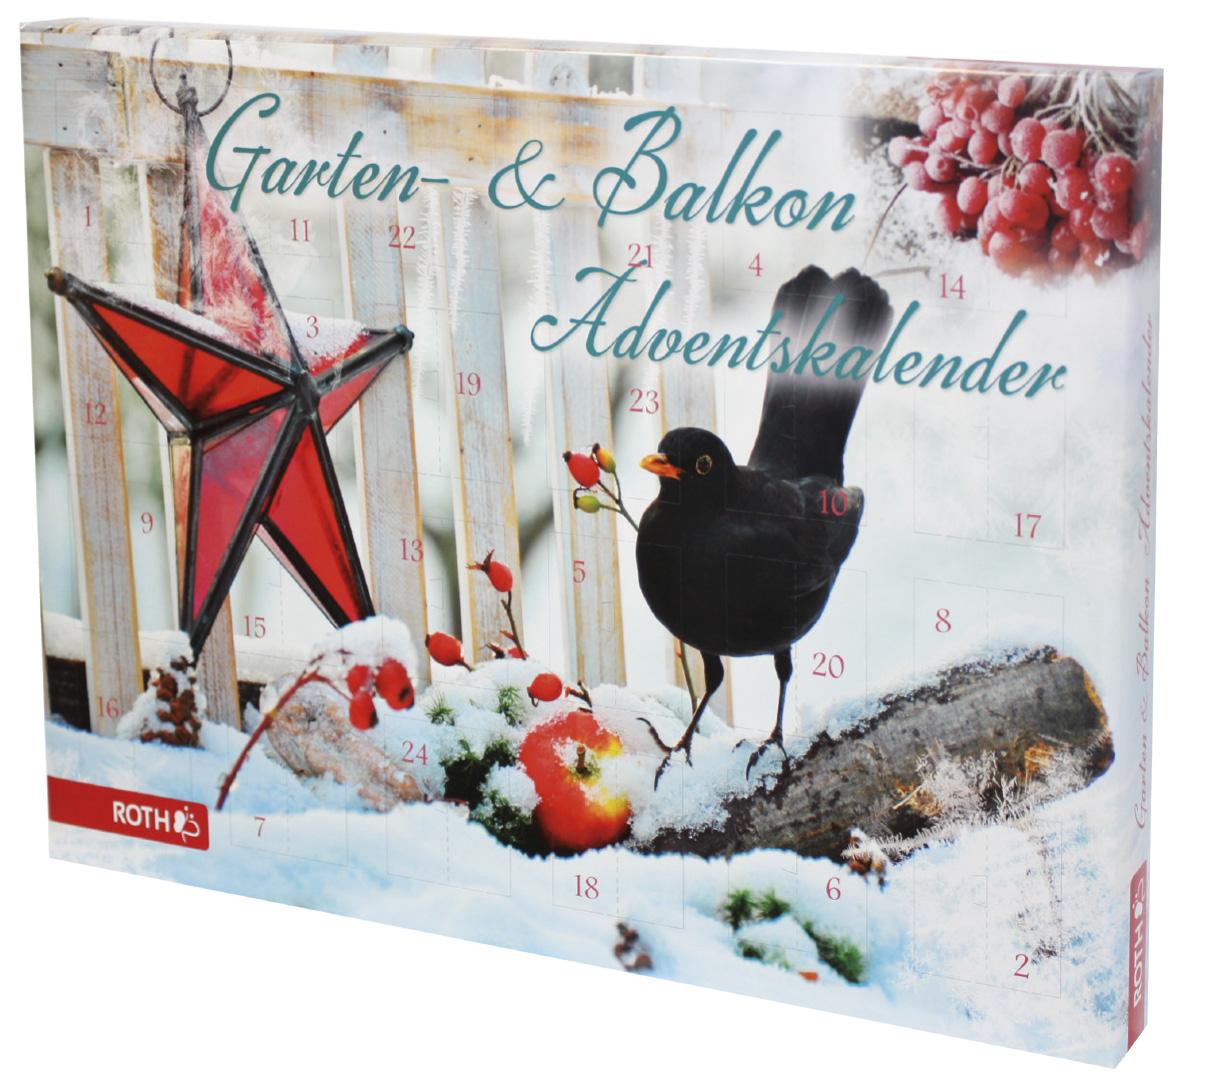 adventskalender weihnachtskalender garten und balkonkalender ebay. Black Bedroom Furniture Sets. Home Design Ideas